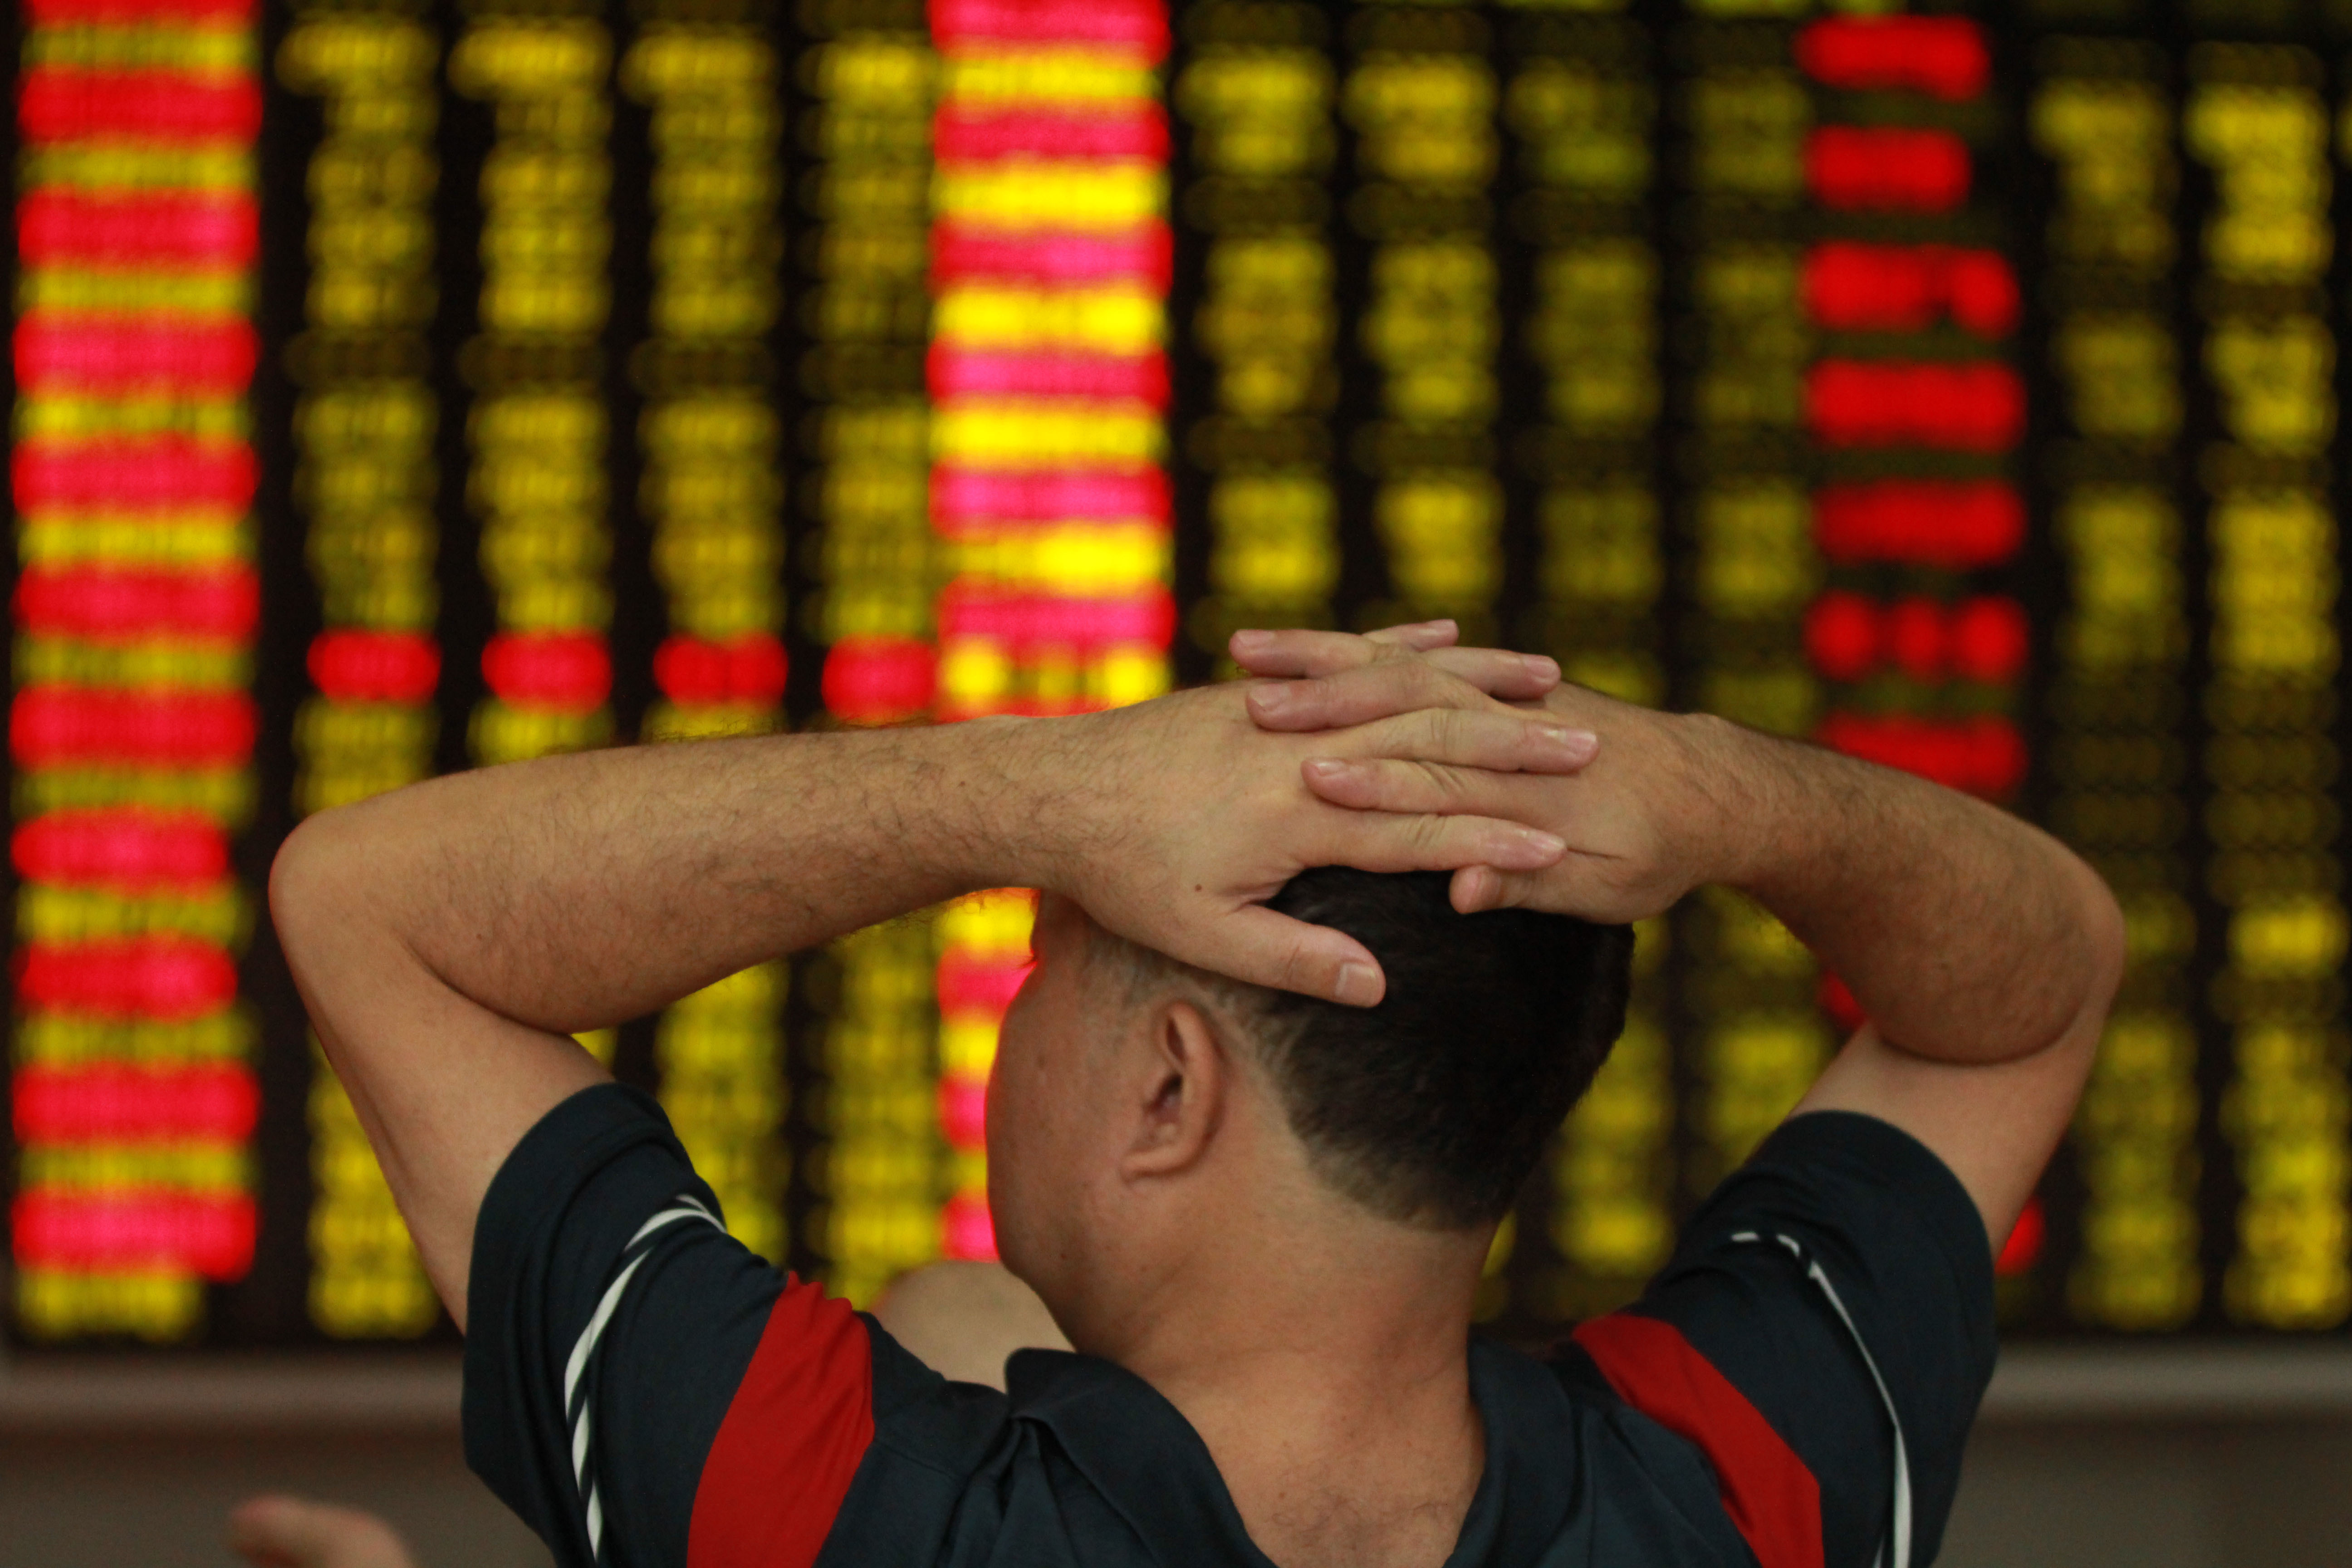 An investor observes stock market at a stock exchange hall on September 2, 2015 in Haikou, Hainan Province of China.